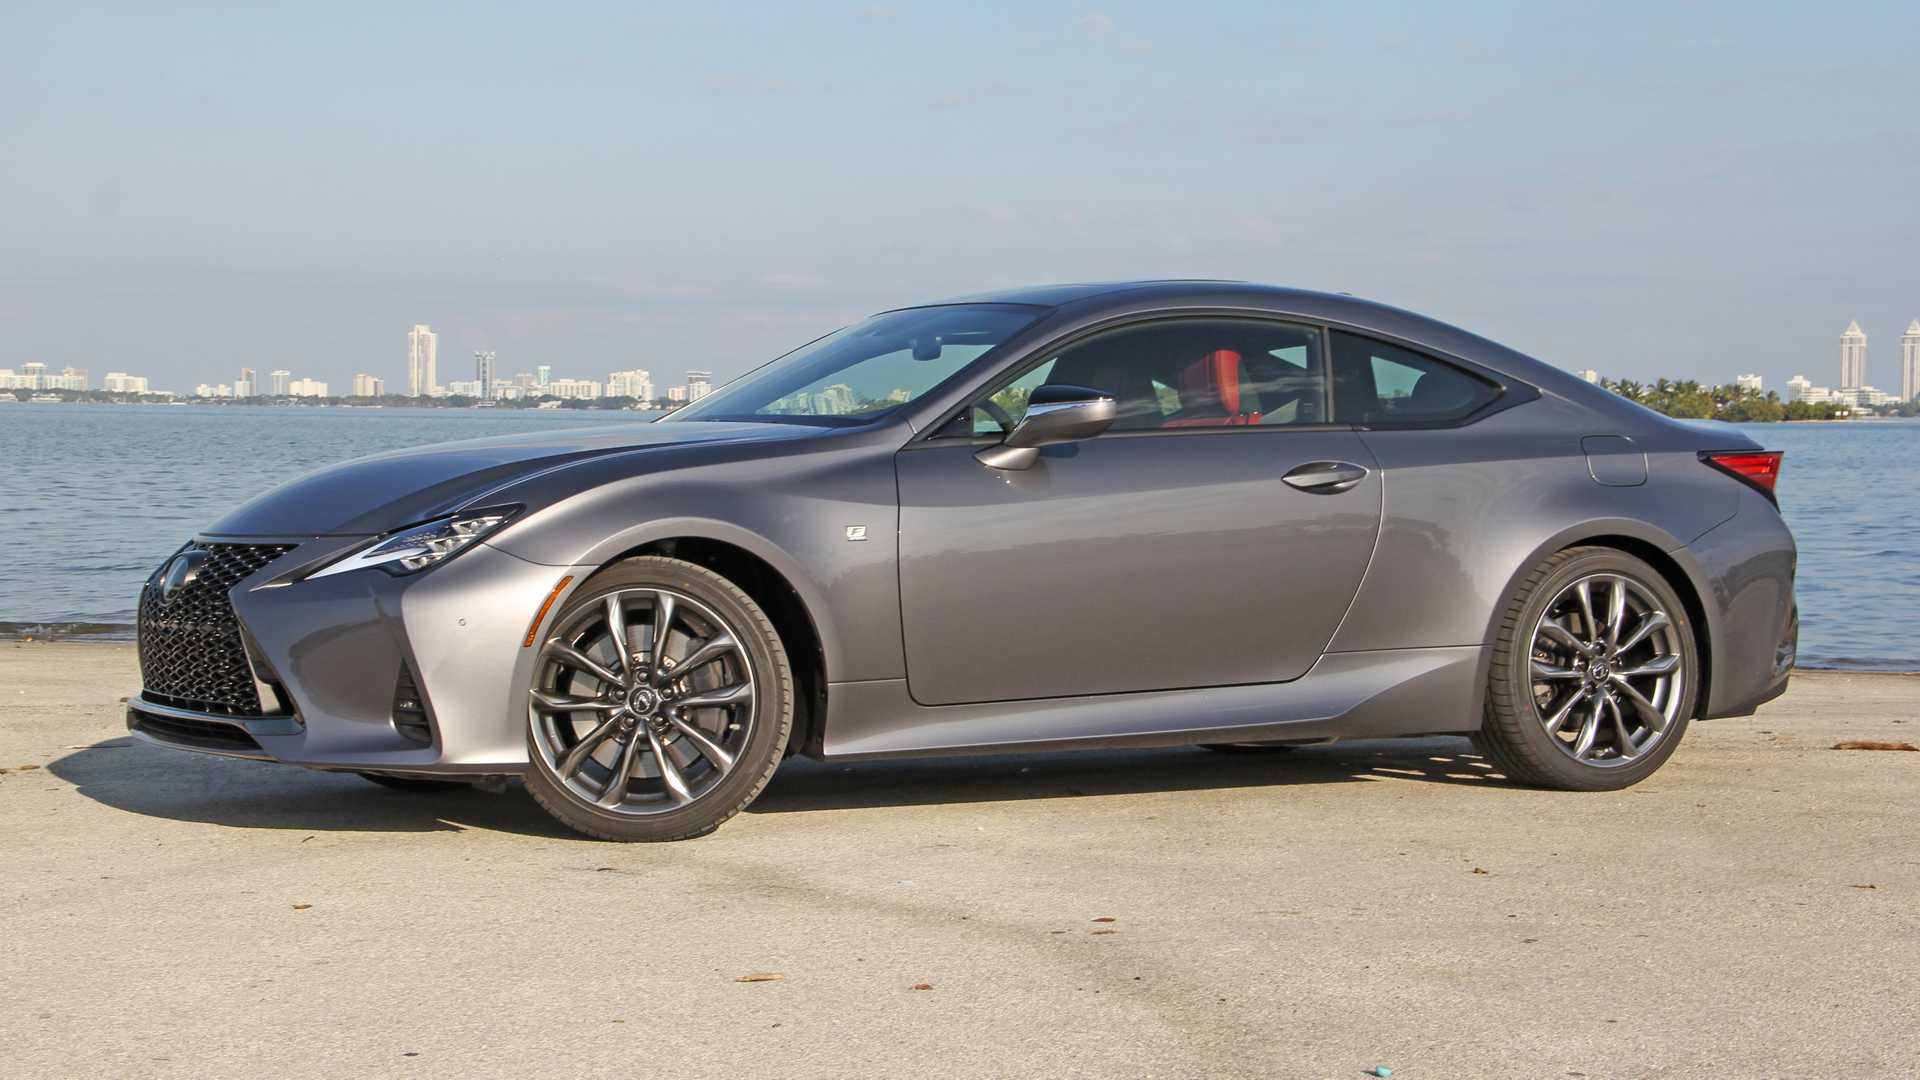 88 New 2019 Lexus Coupe Price And Review